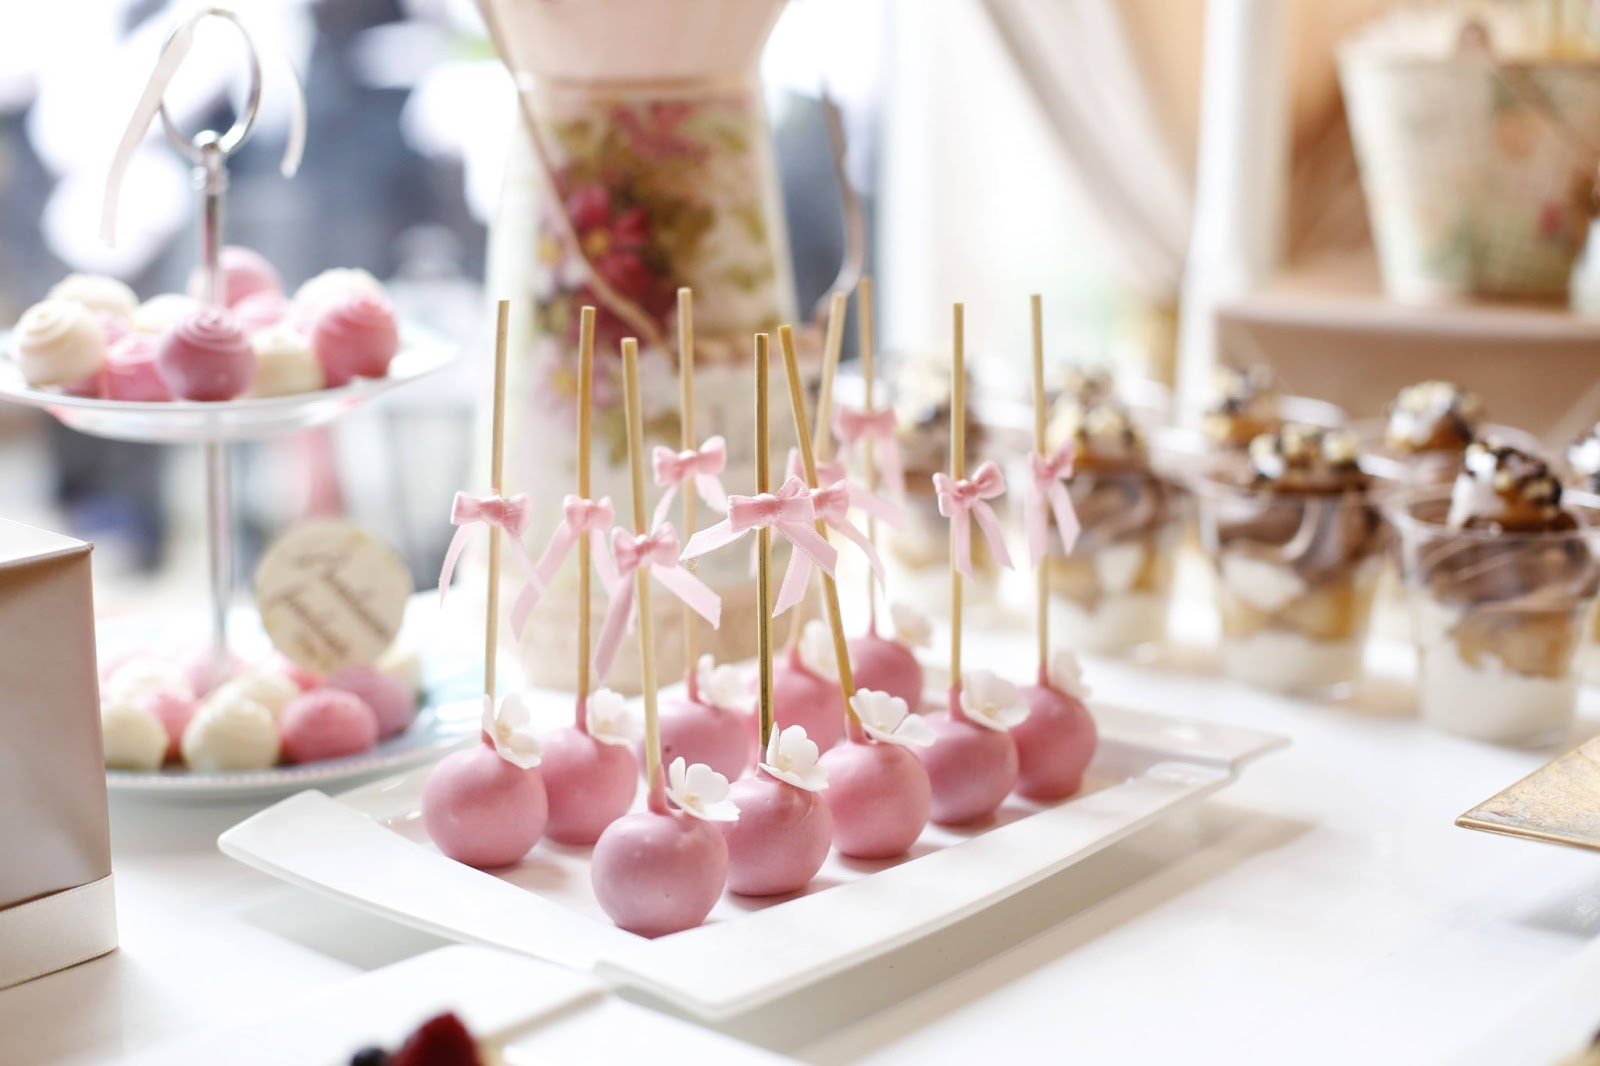 A dessert able with pink and white cake pops and truffles